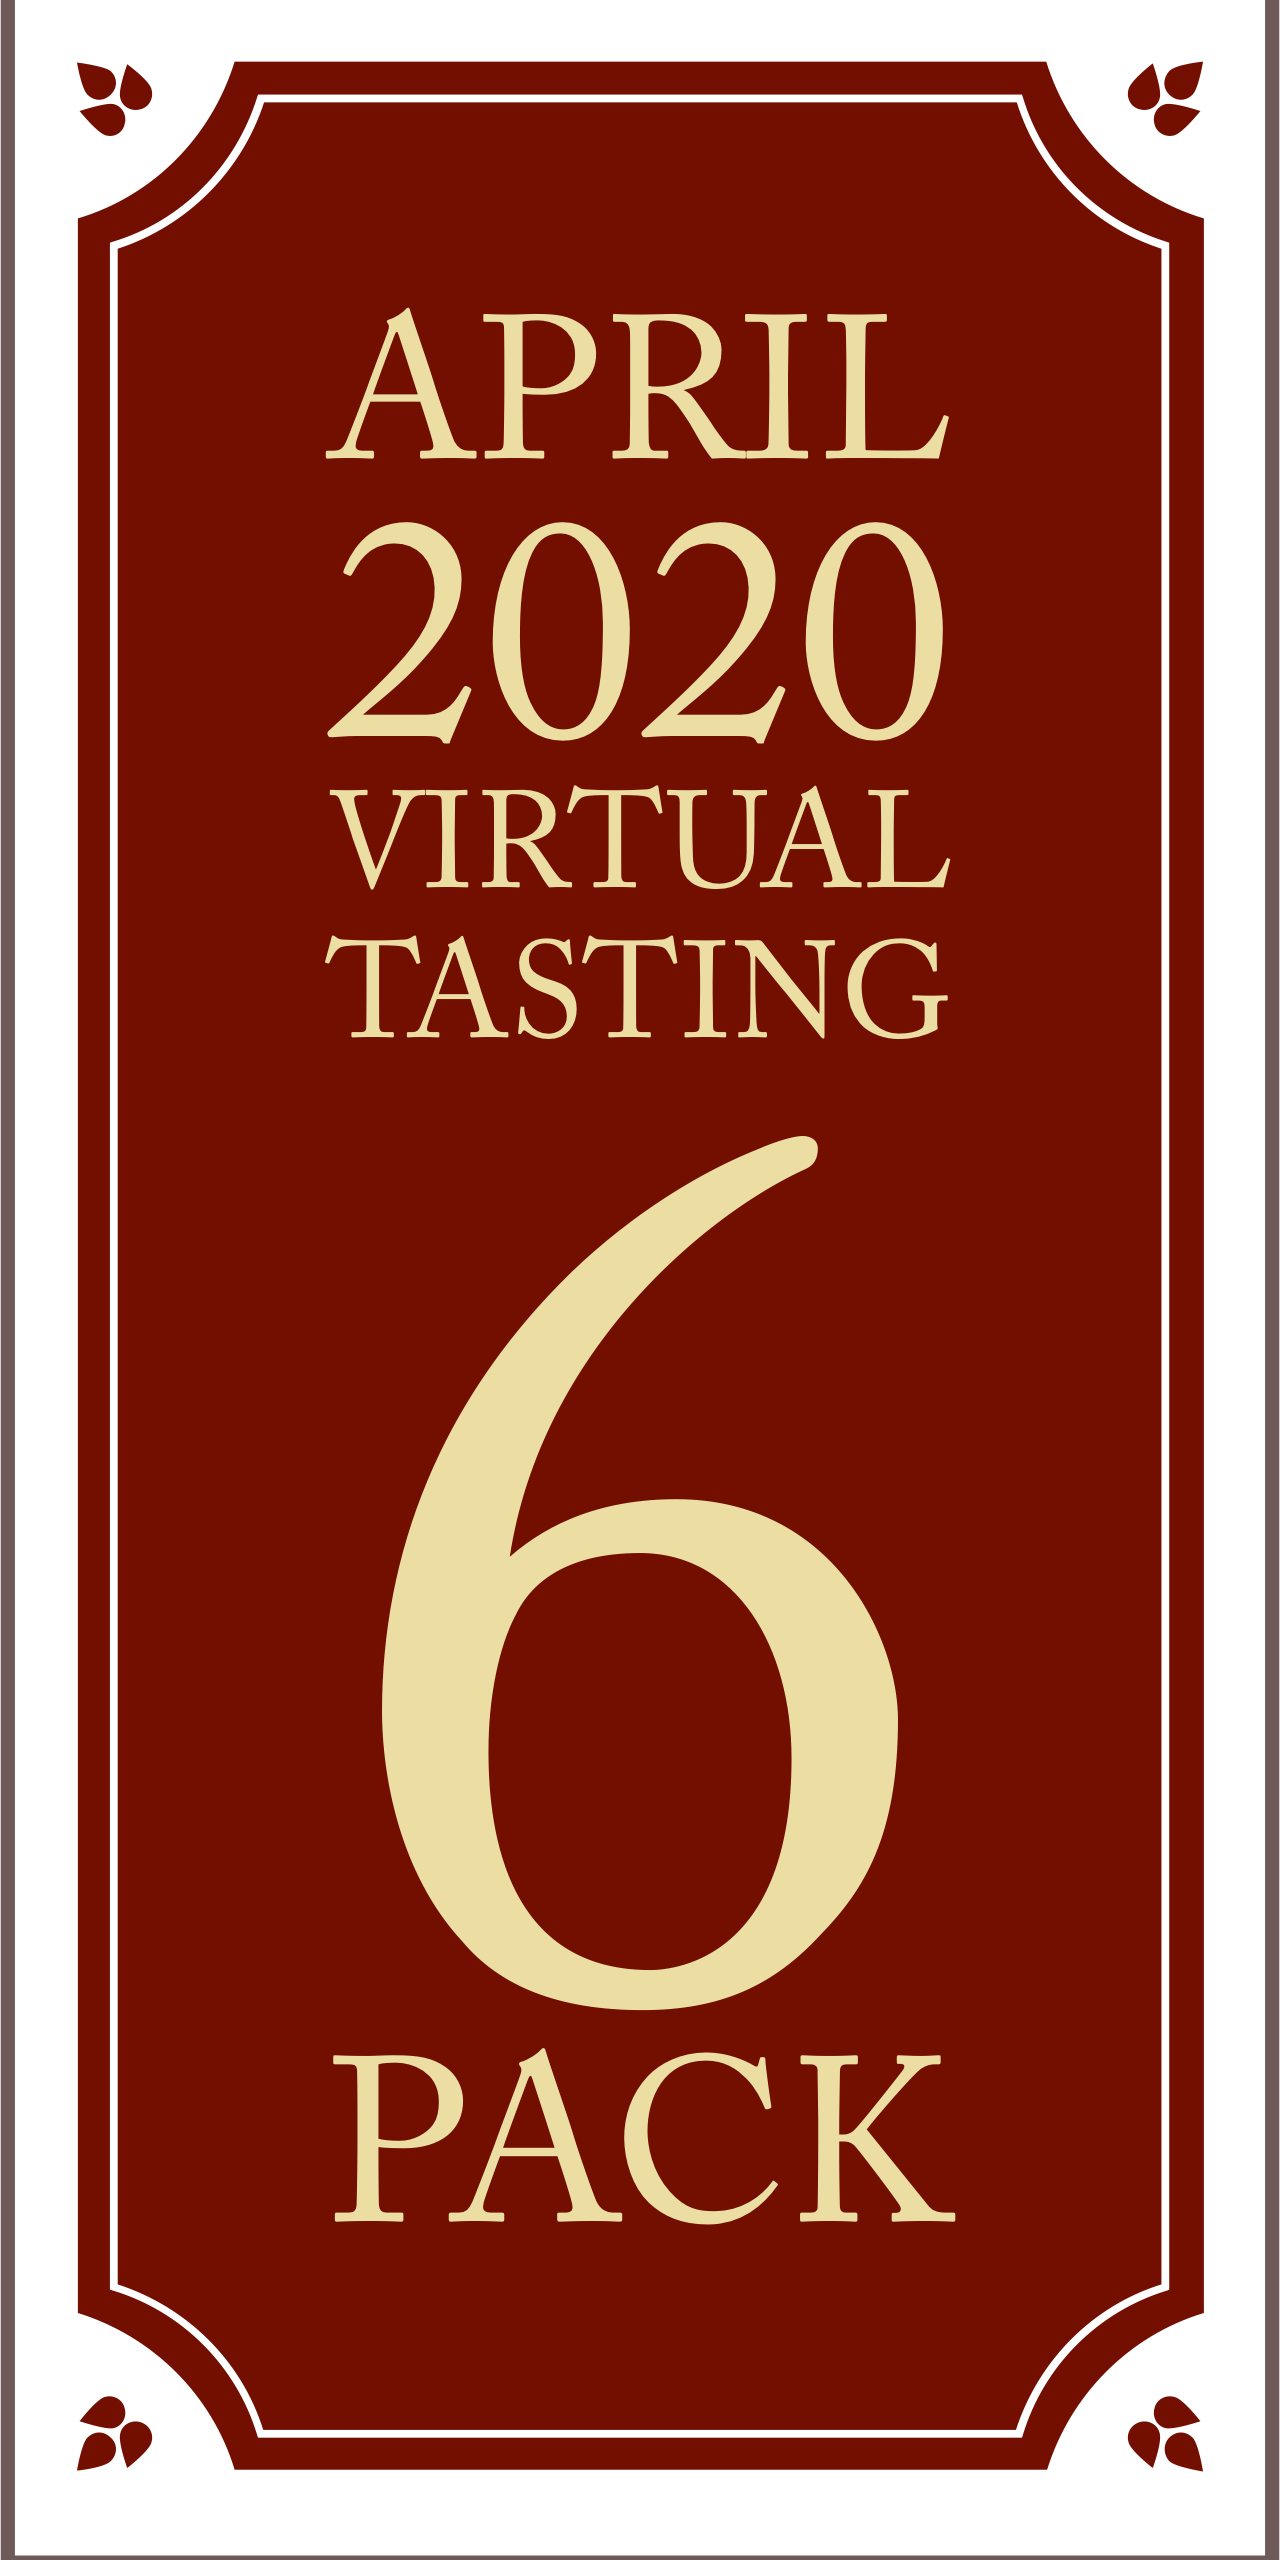 April 2020 Virtual Tasting 6 pack (6x750ml)